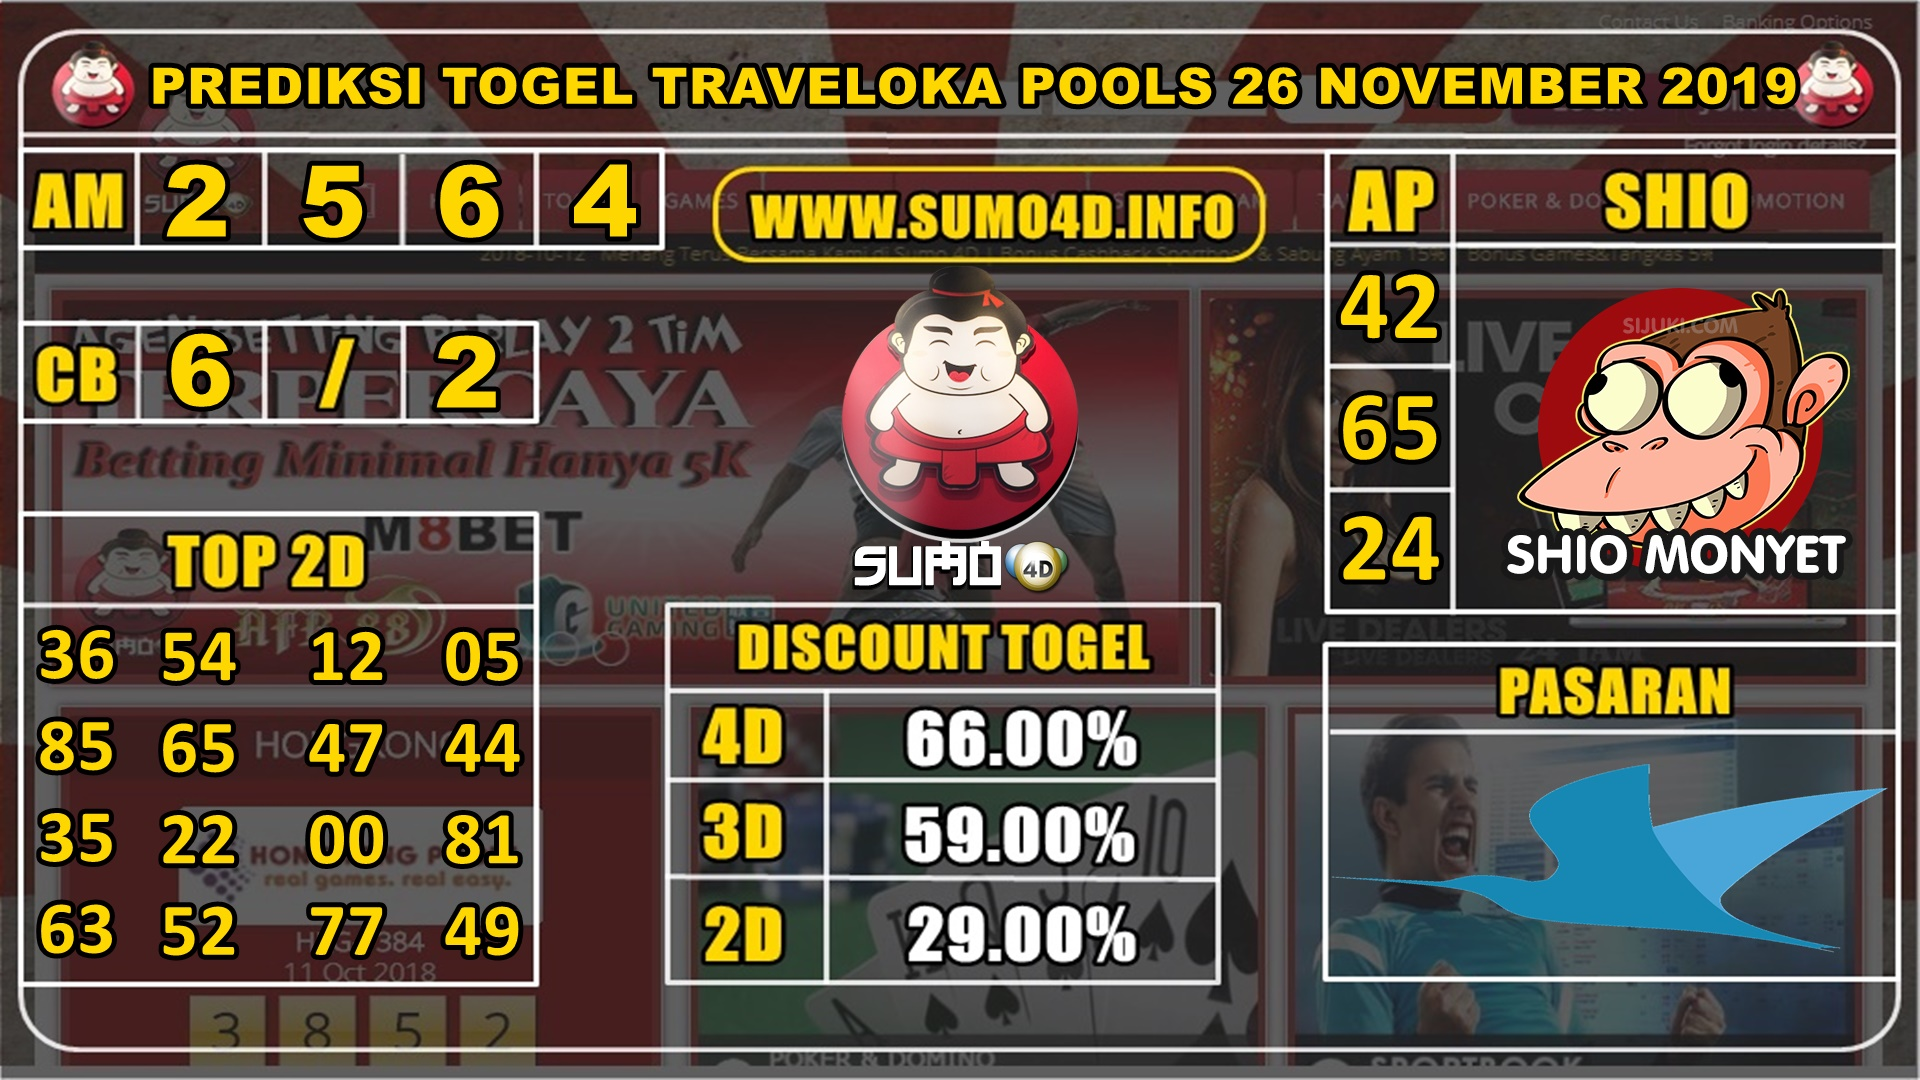 PREDIKSI TOGEL TRAVELOKA POOLS 26 NOVEMBER 2019